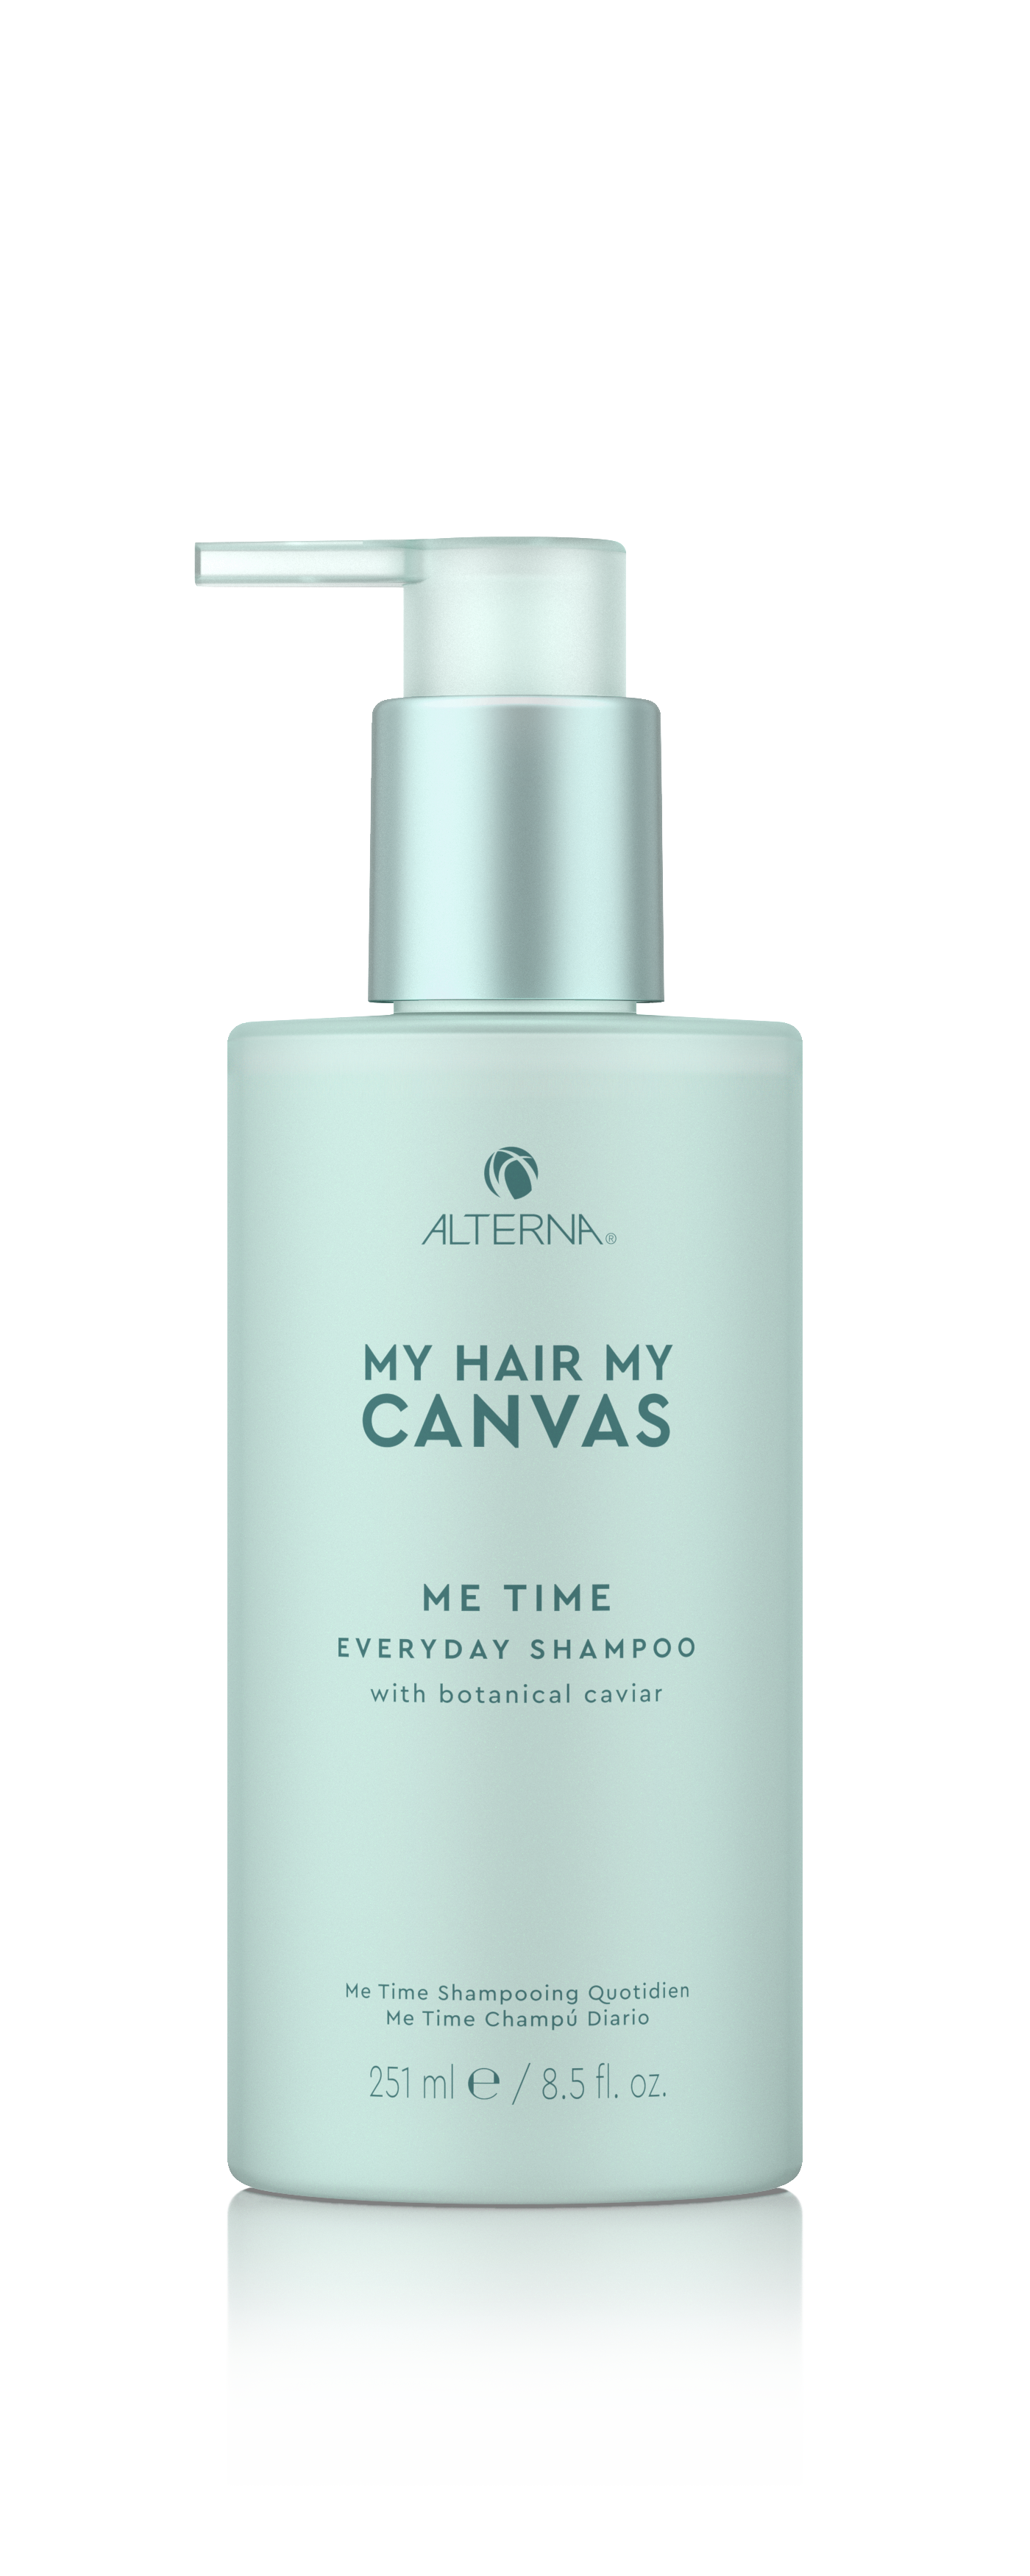 My Hair. My Canvas. Me Time Everyday Shampoo